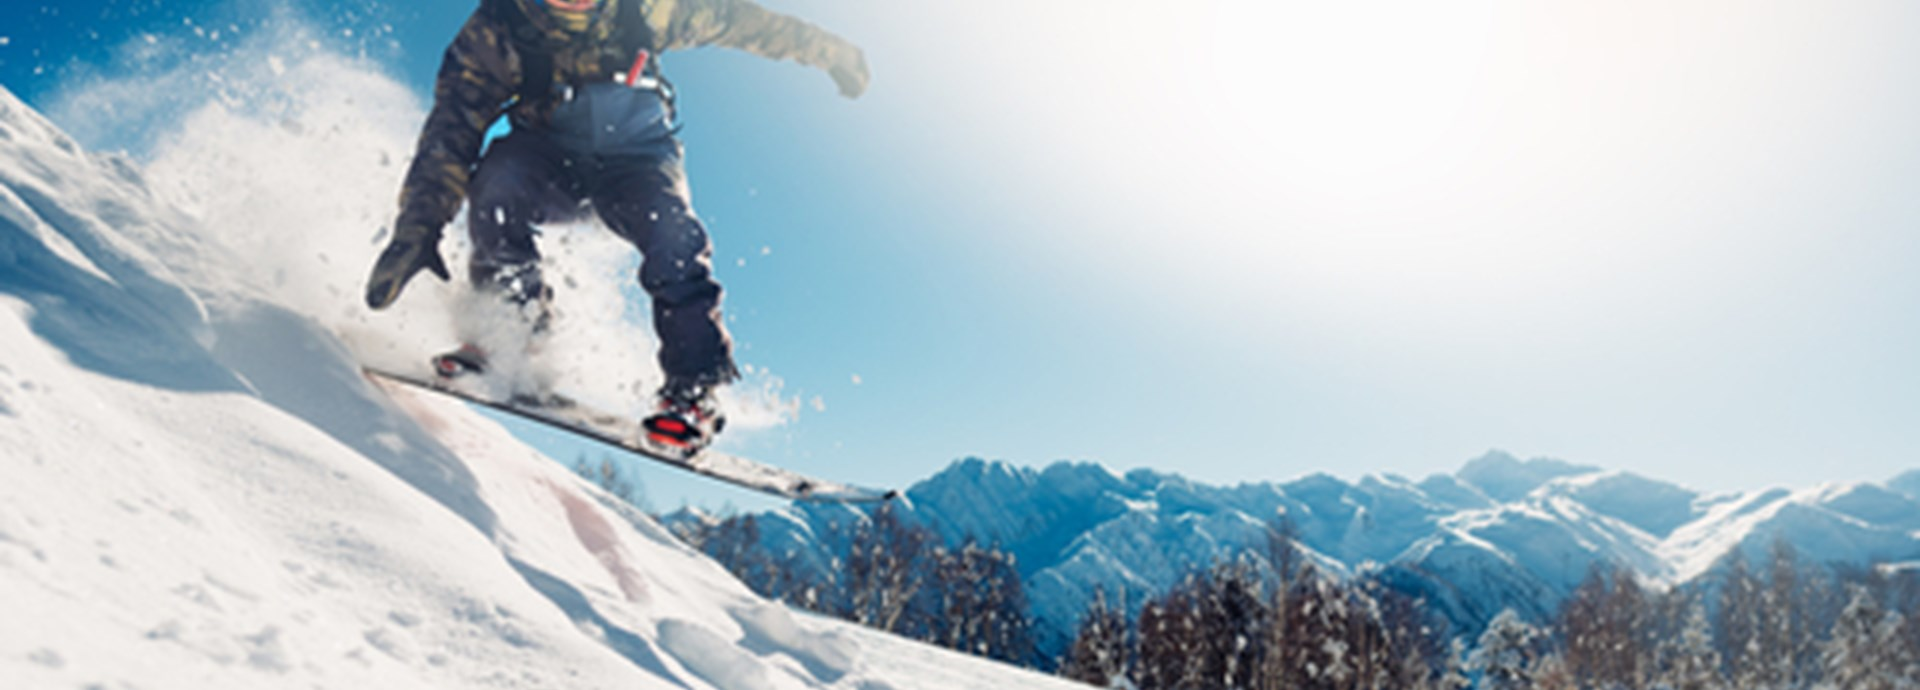 snowboarder is jumping with snowboard from snowhill on holidays